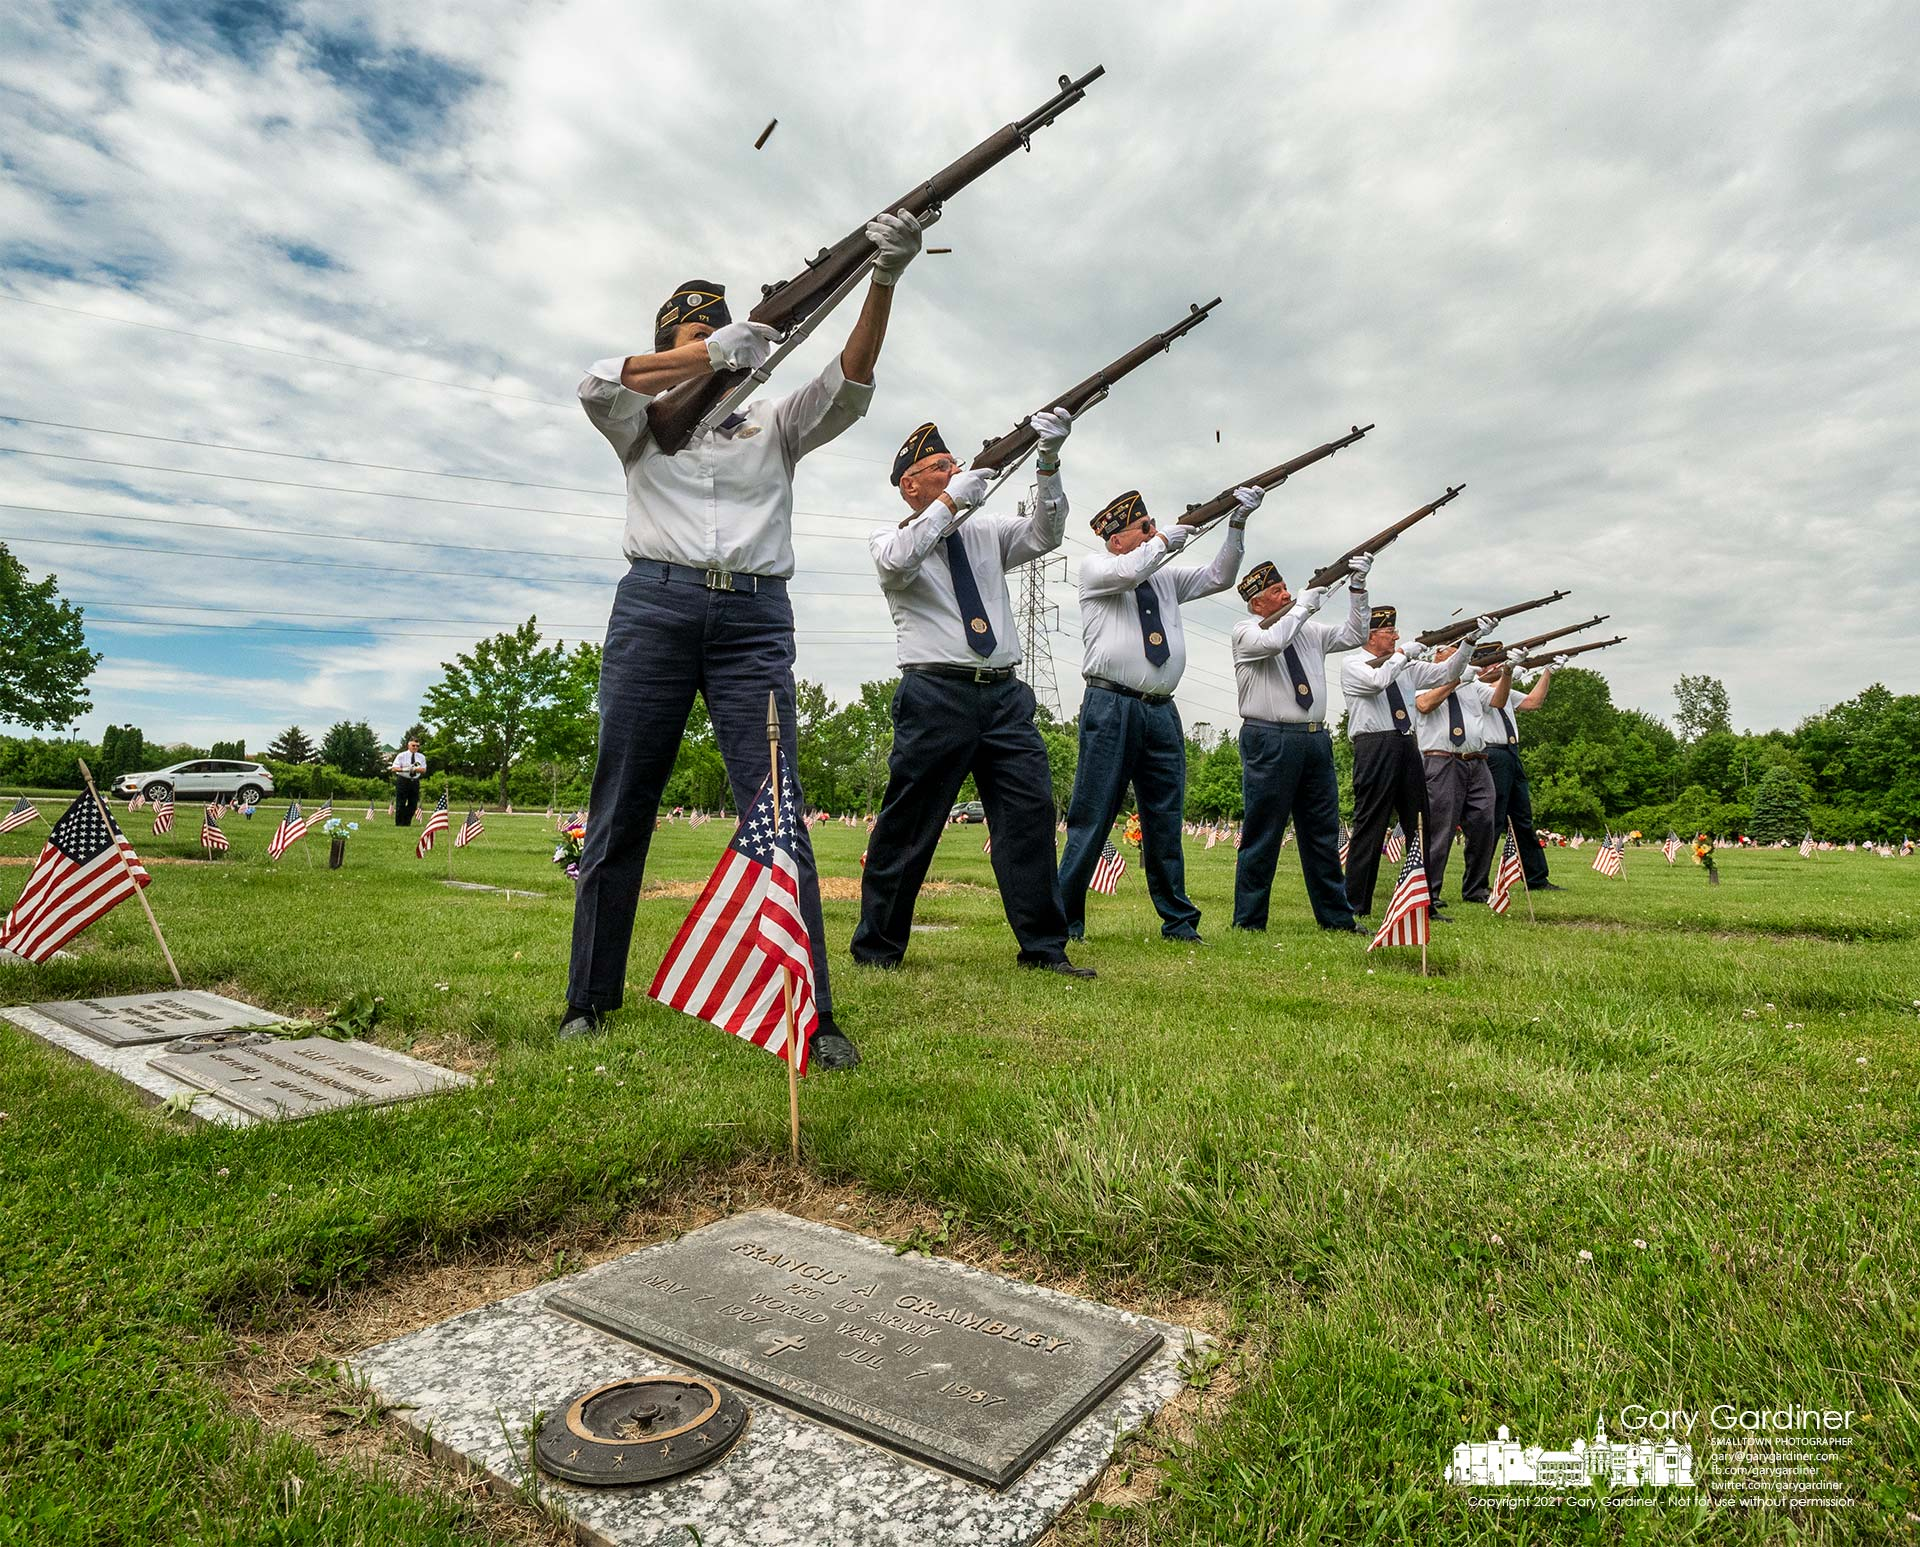 The Westerville American Legion Honor Guard fires a salute during ceremonies at Northlawn Cemetery, one of three cemeteries the veteran group visited on Memorial Day despite not being issued a permit by the city for its annual march and observances. My Final Photo for May 31, 2021.